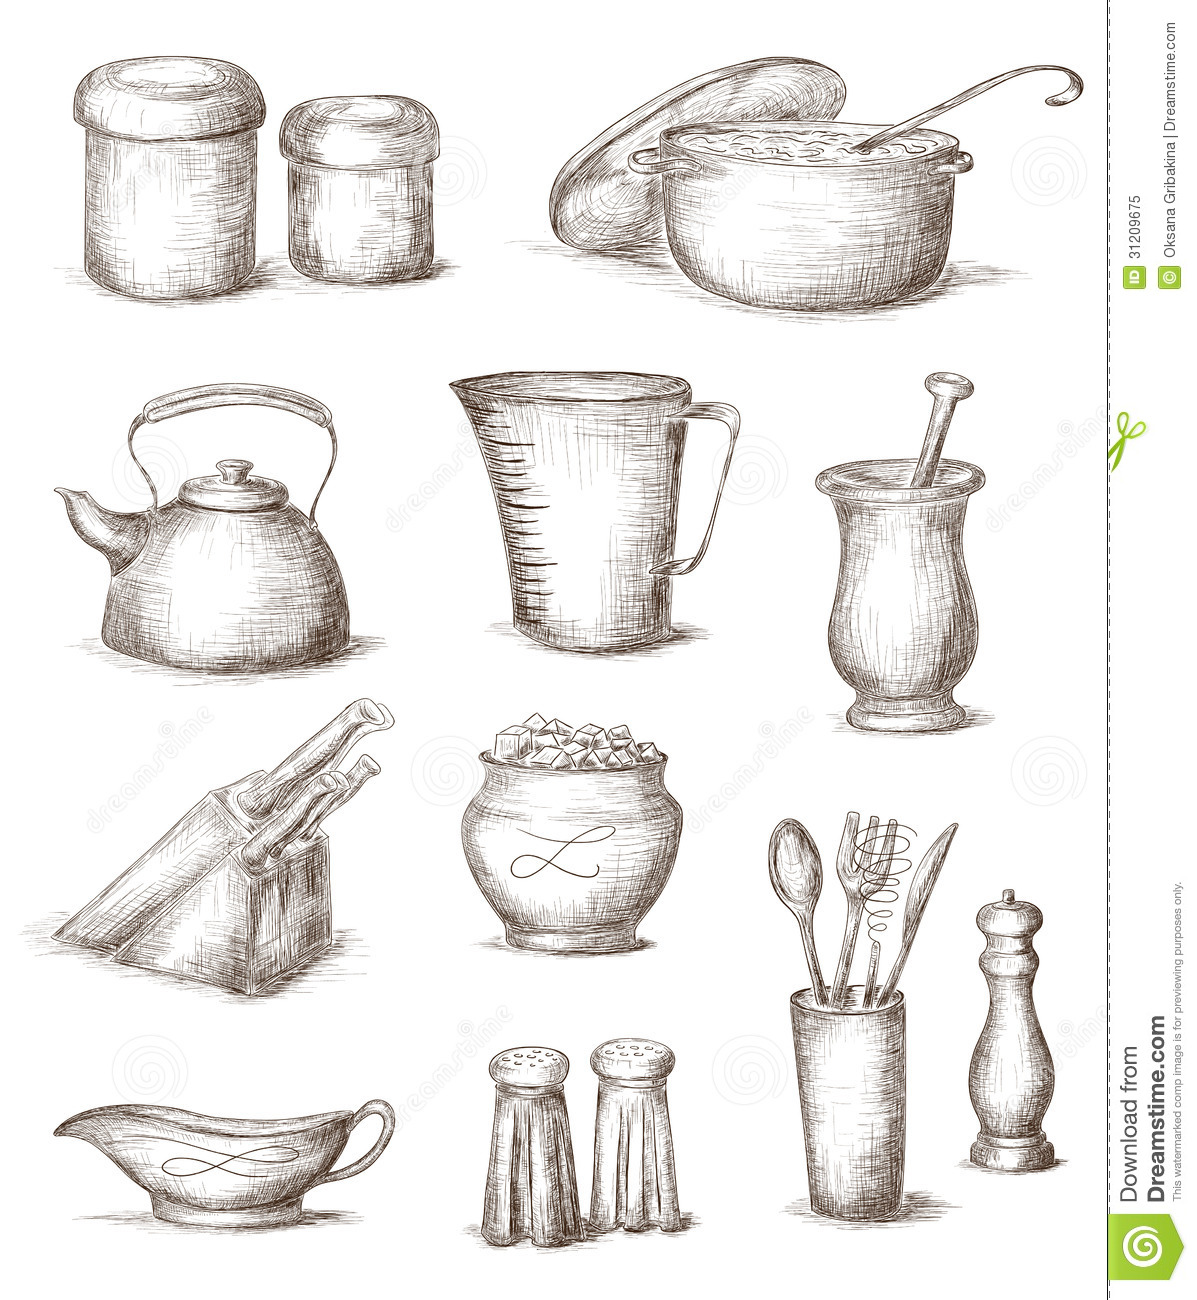 Hand Drawn Kitchen Utensils Royalty Free Stock Photo - Image: 31209675